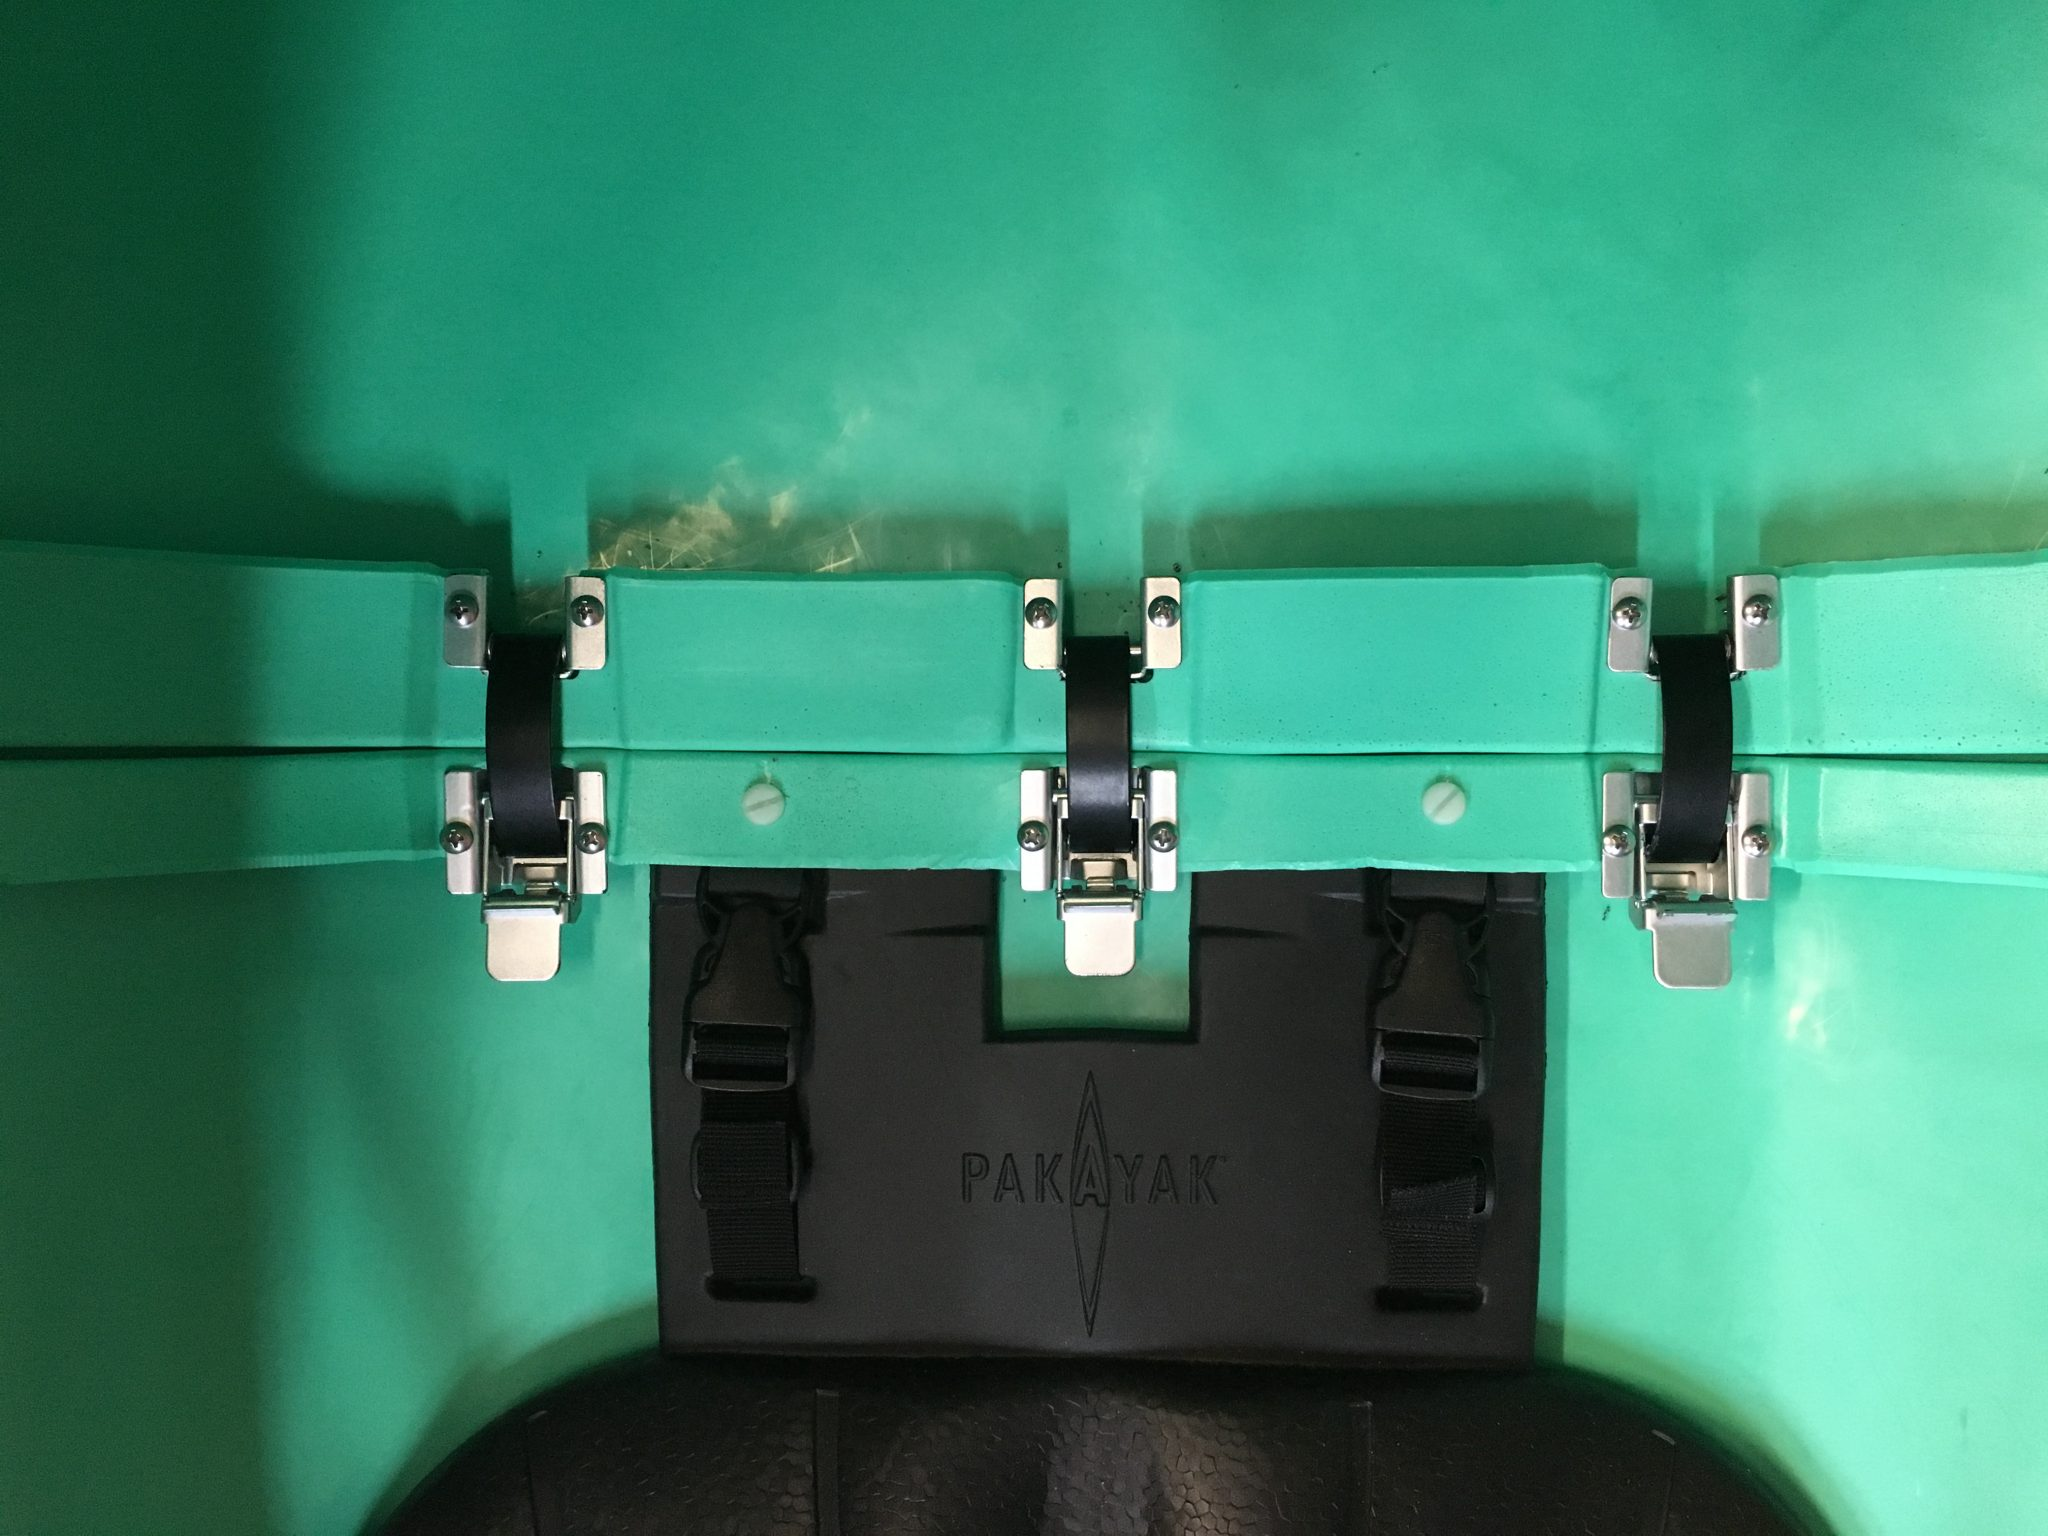 Mockup clamps in the cockpit